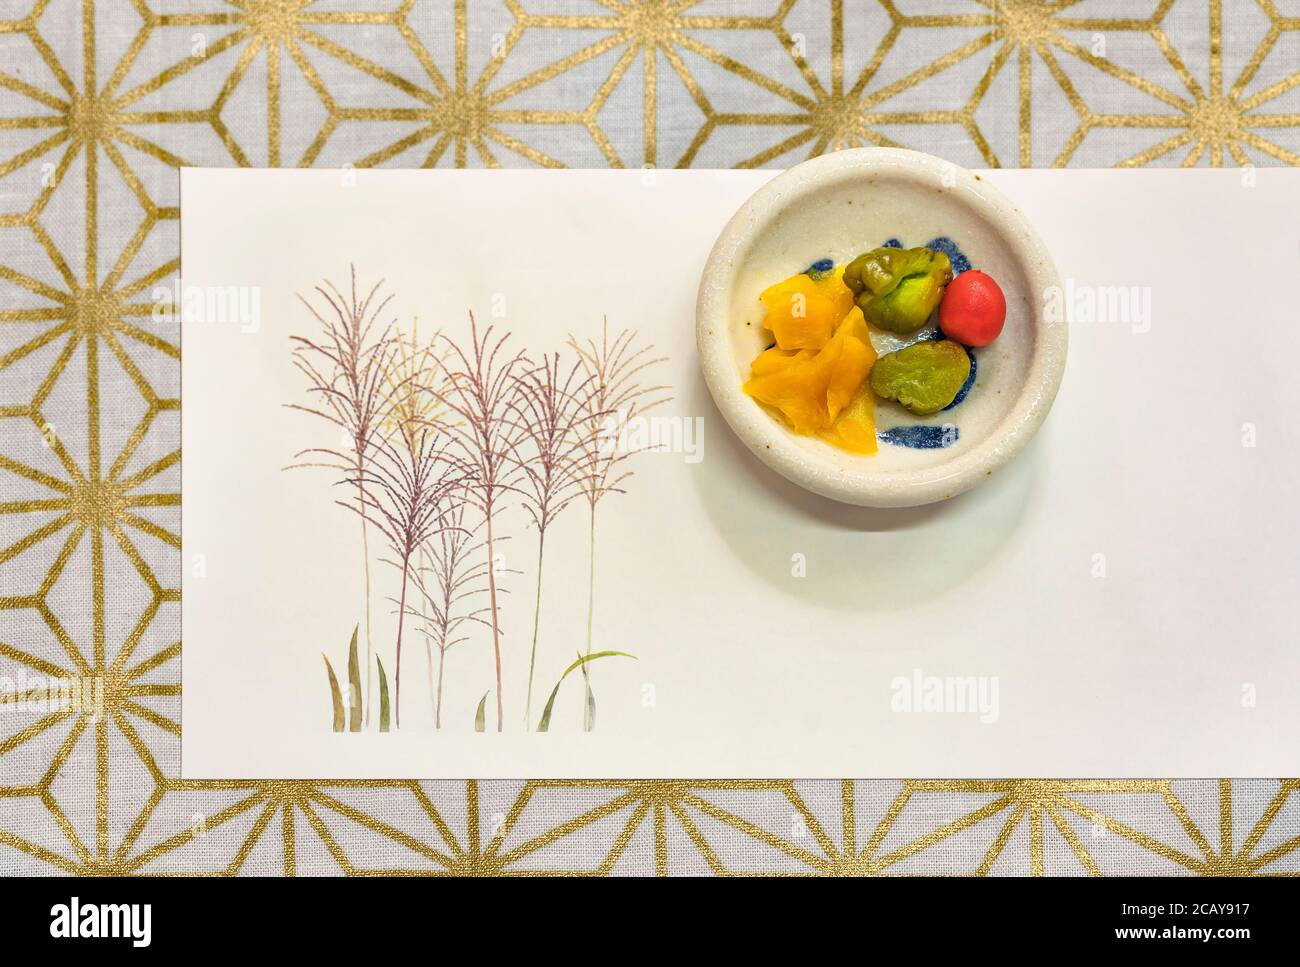 Japanese fermented tsukemono vegetables like takuan daikon radish, cucumber or karikari-koume plum on a place mat with a drawing of susuki grass and a Stock Photo